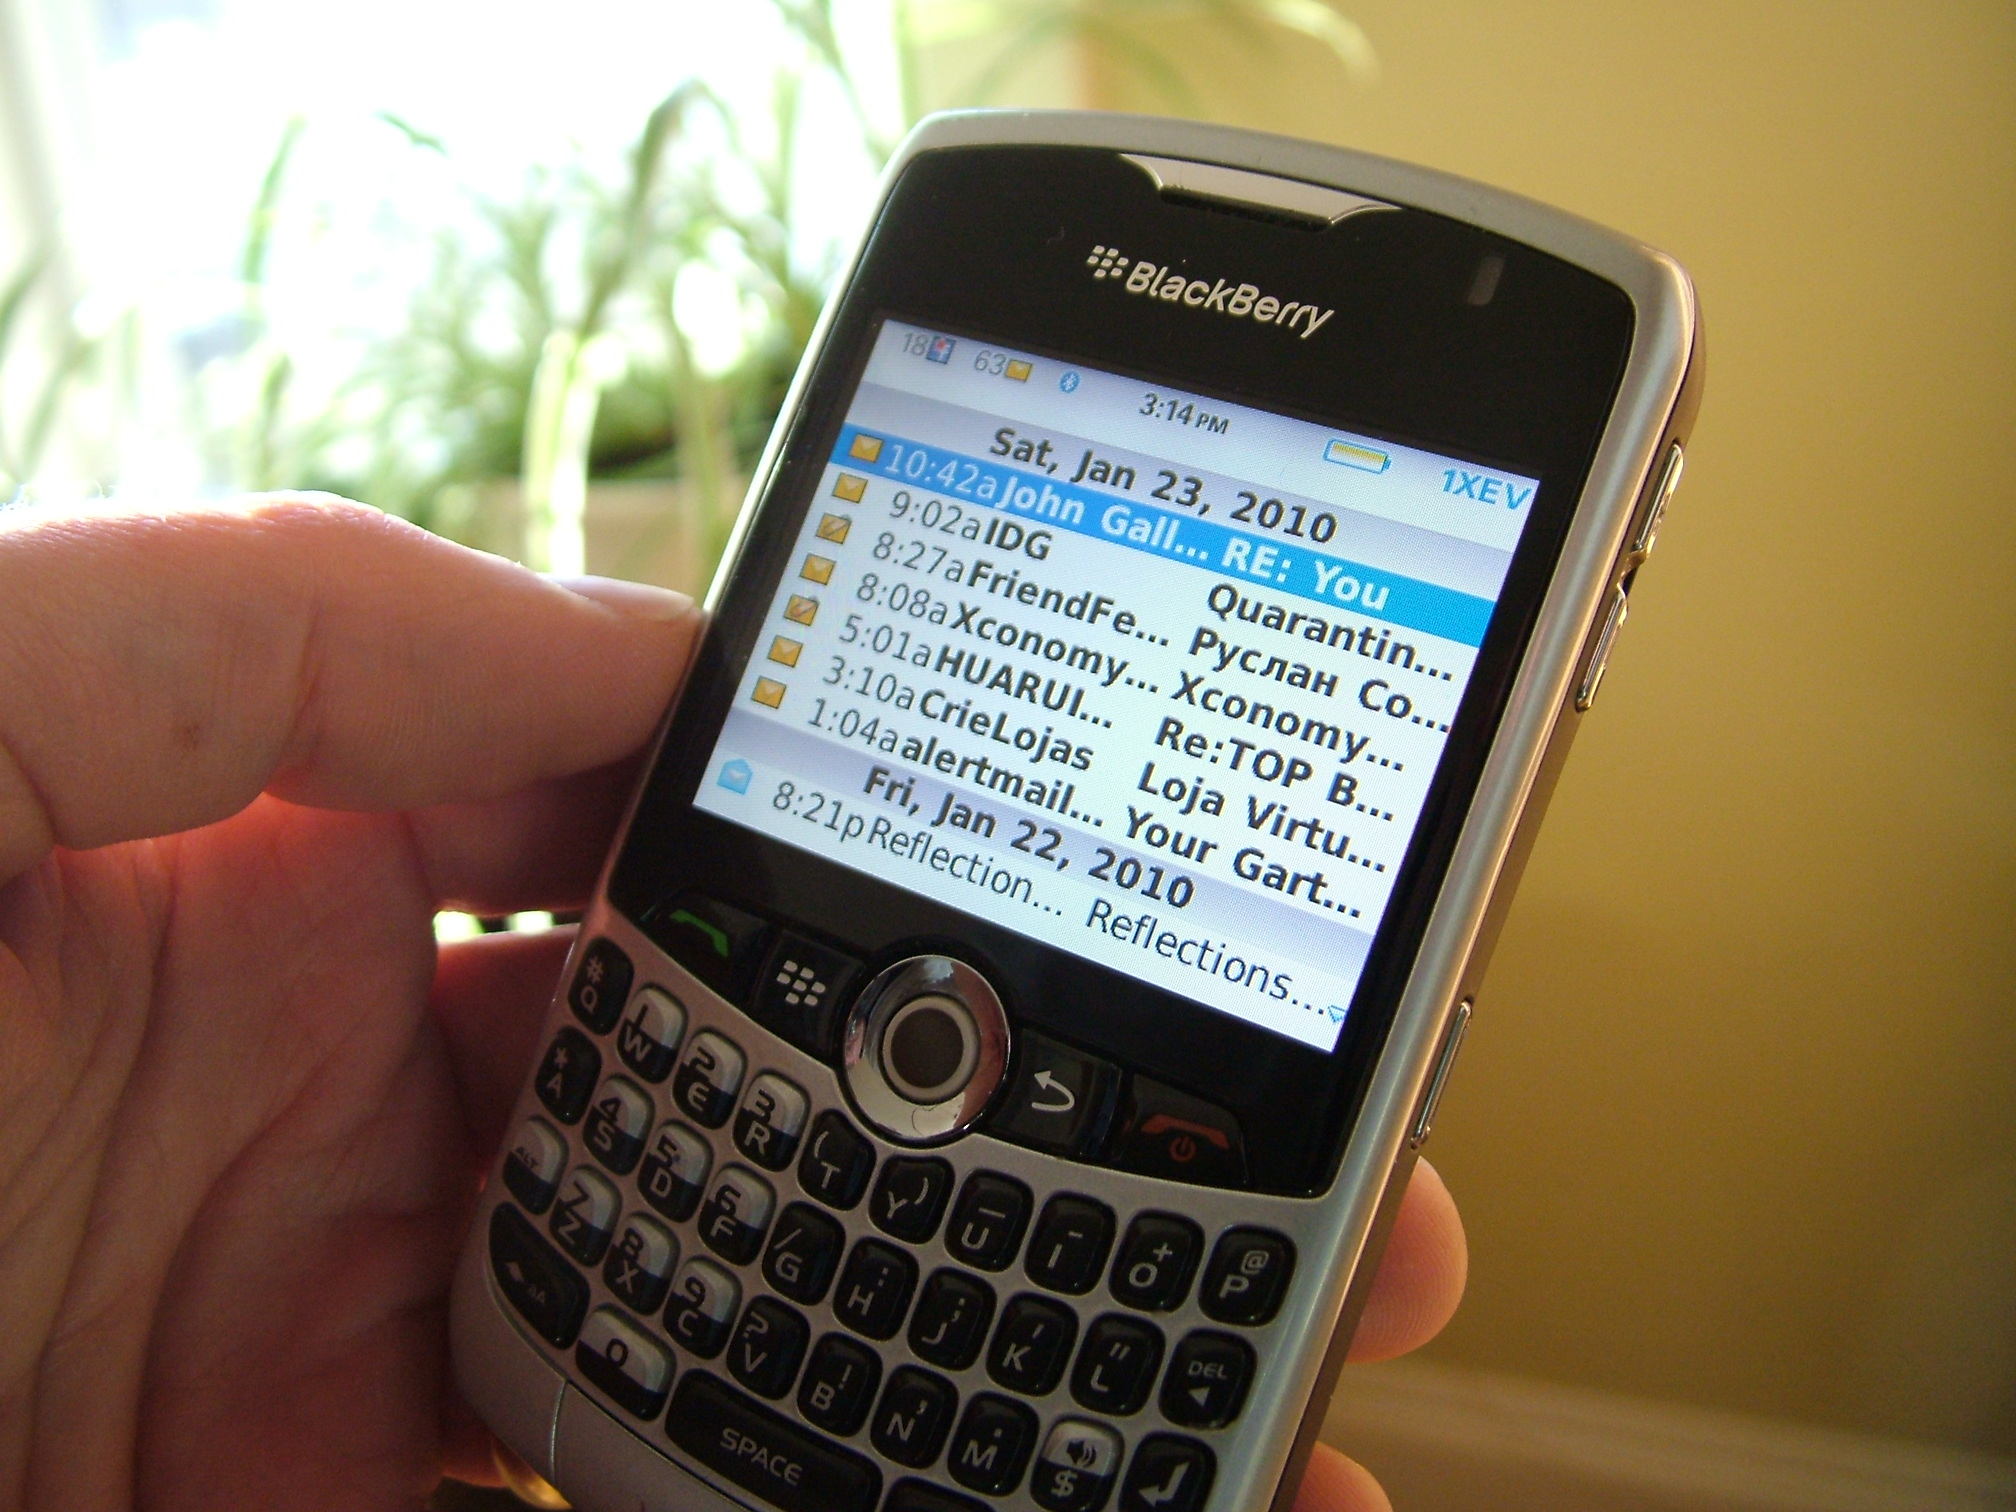 blackberry-email